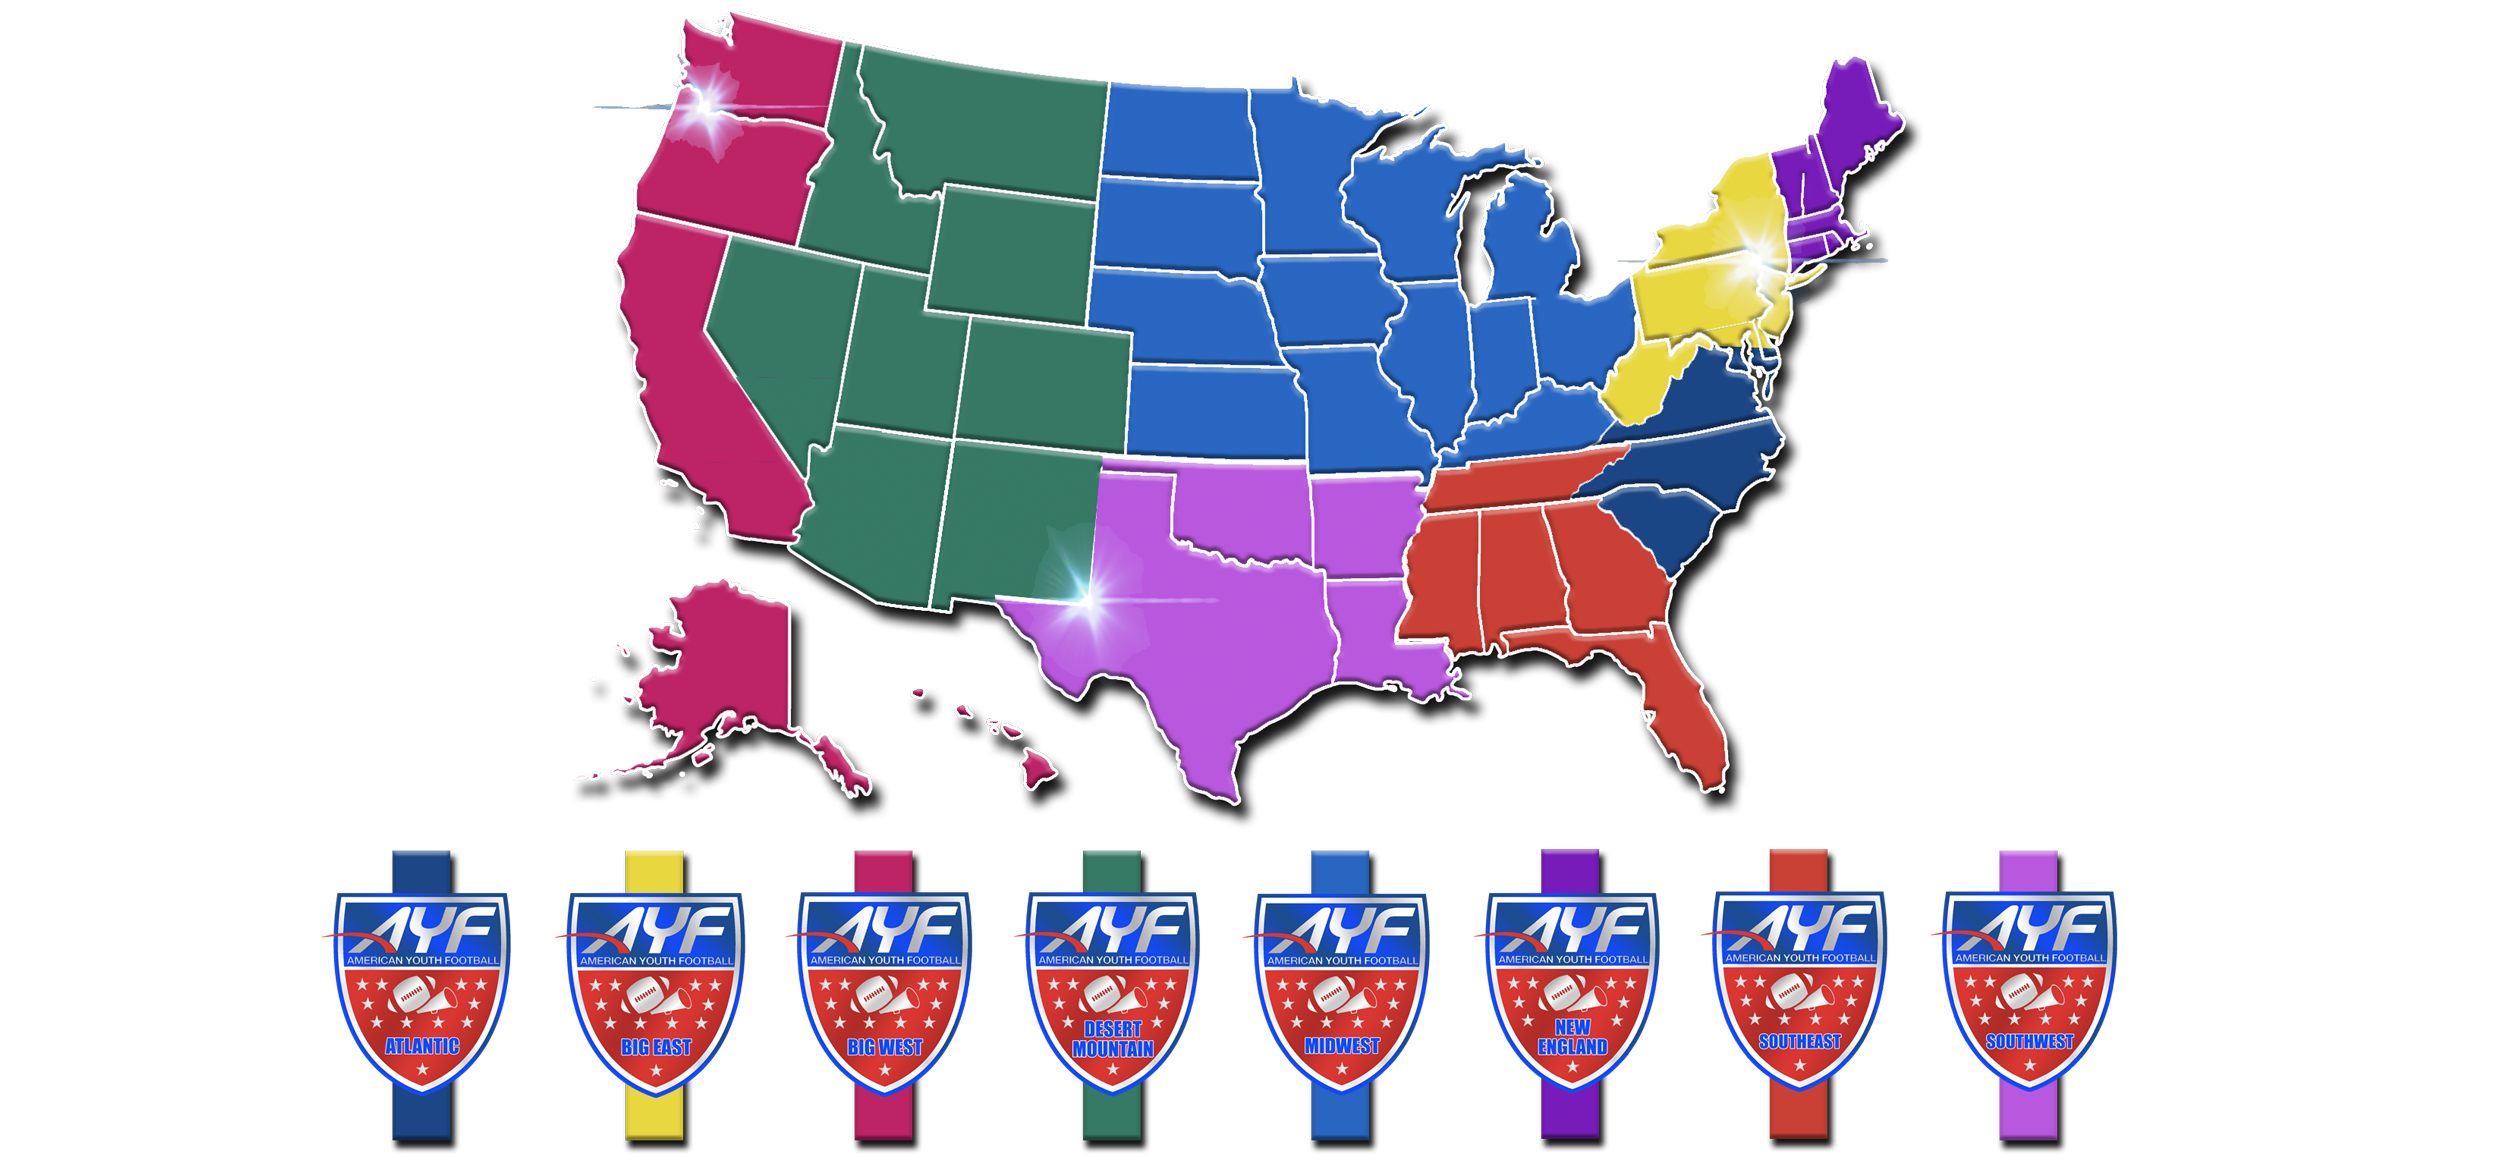 American Youth Football Cheer The Worlds Largest Youth - Us regions map mid atlantic south central